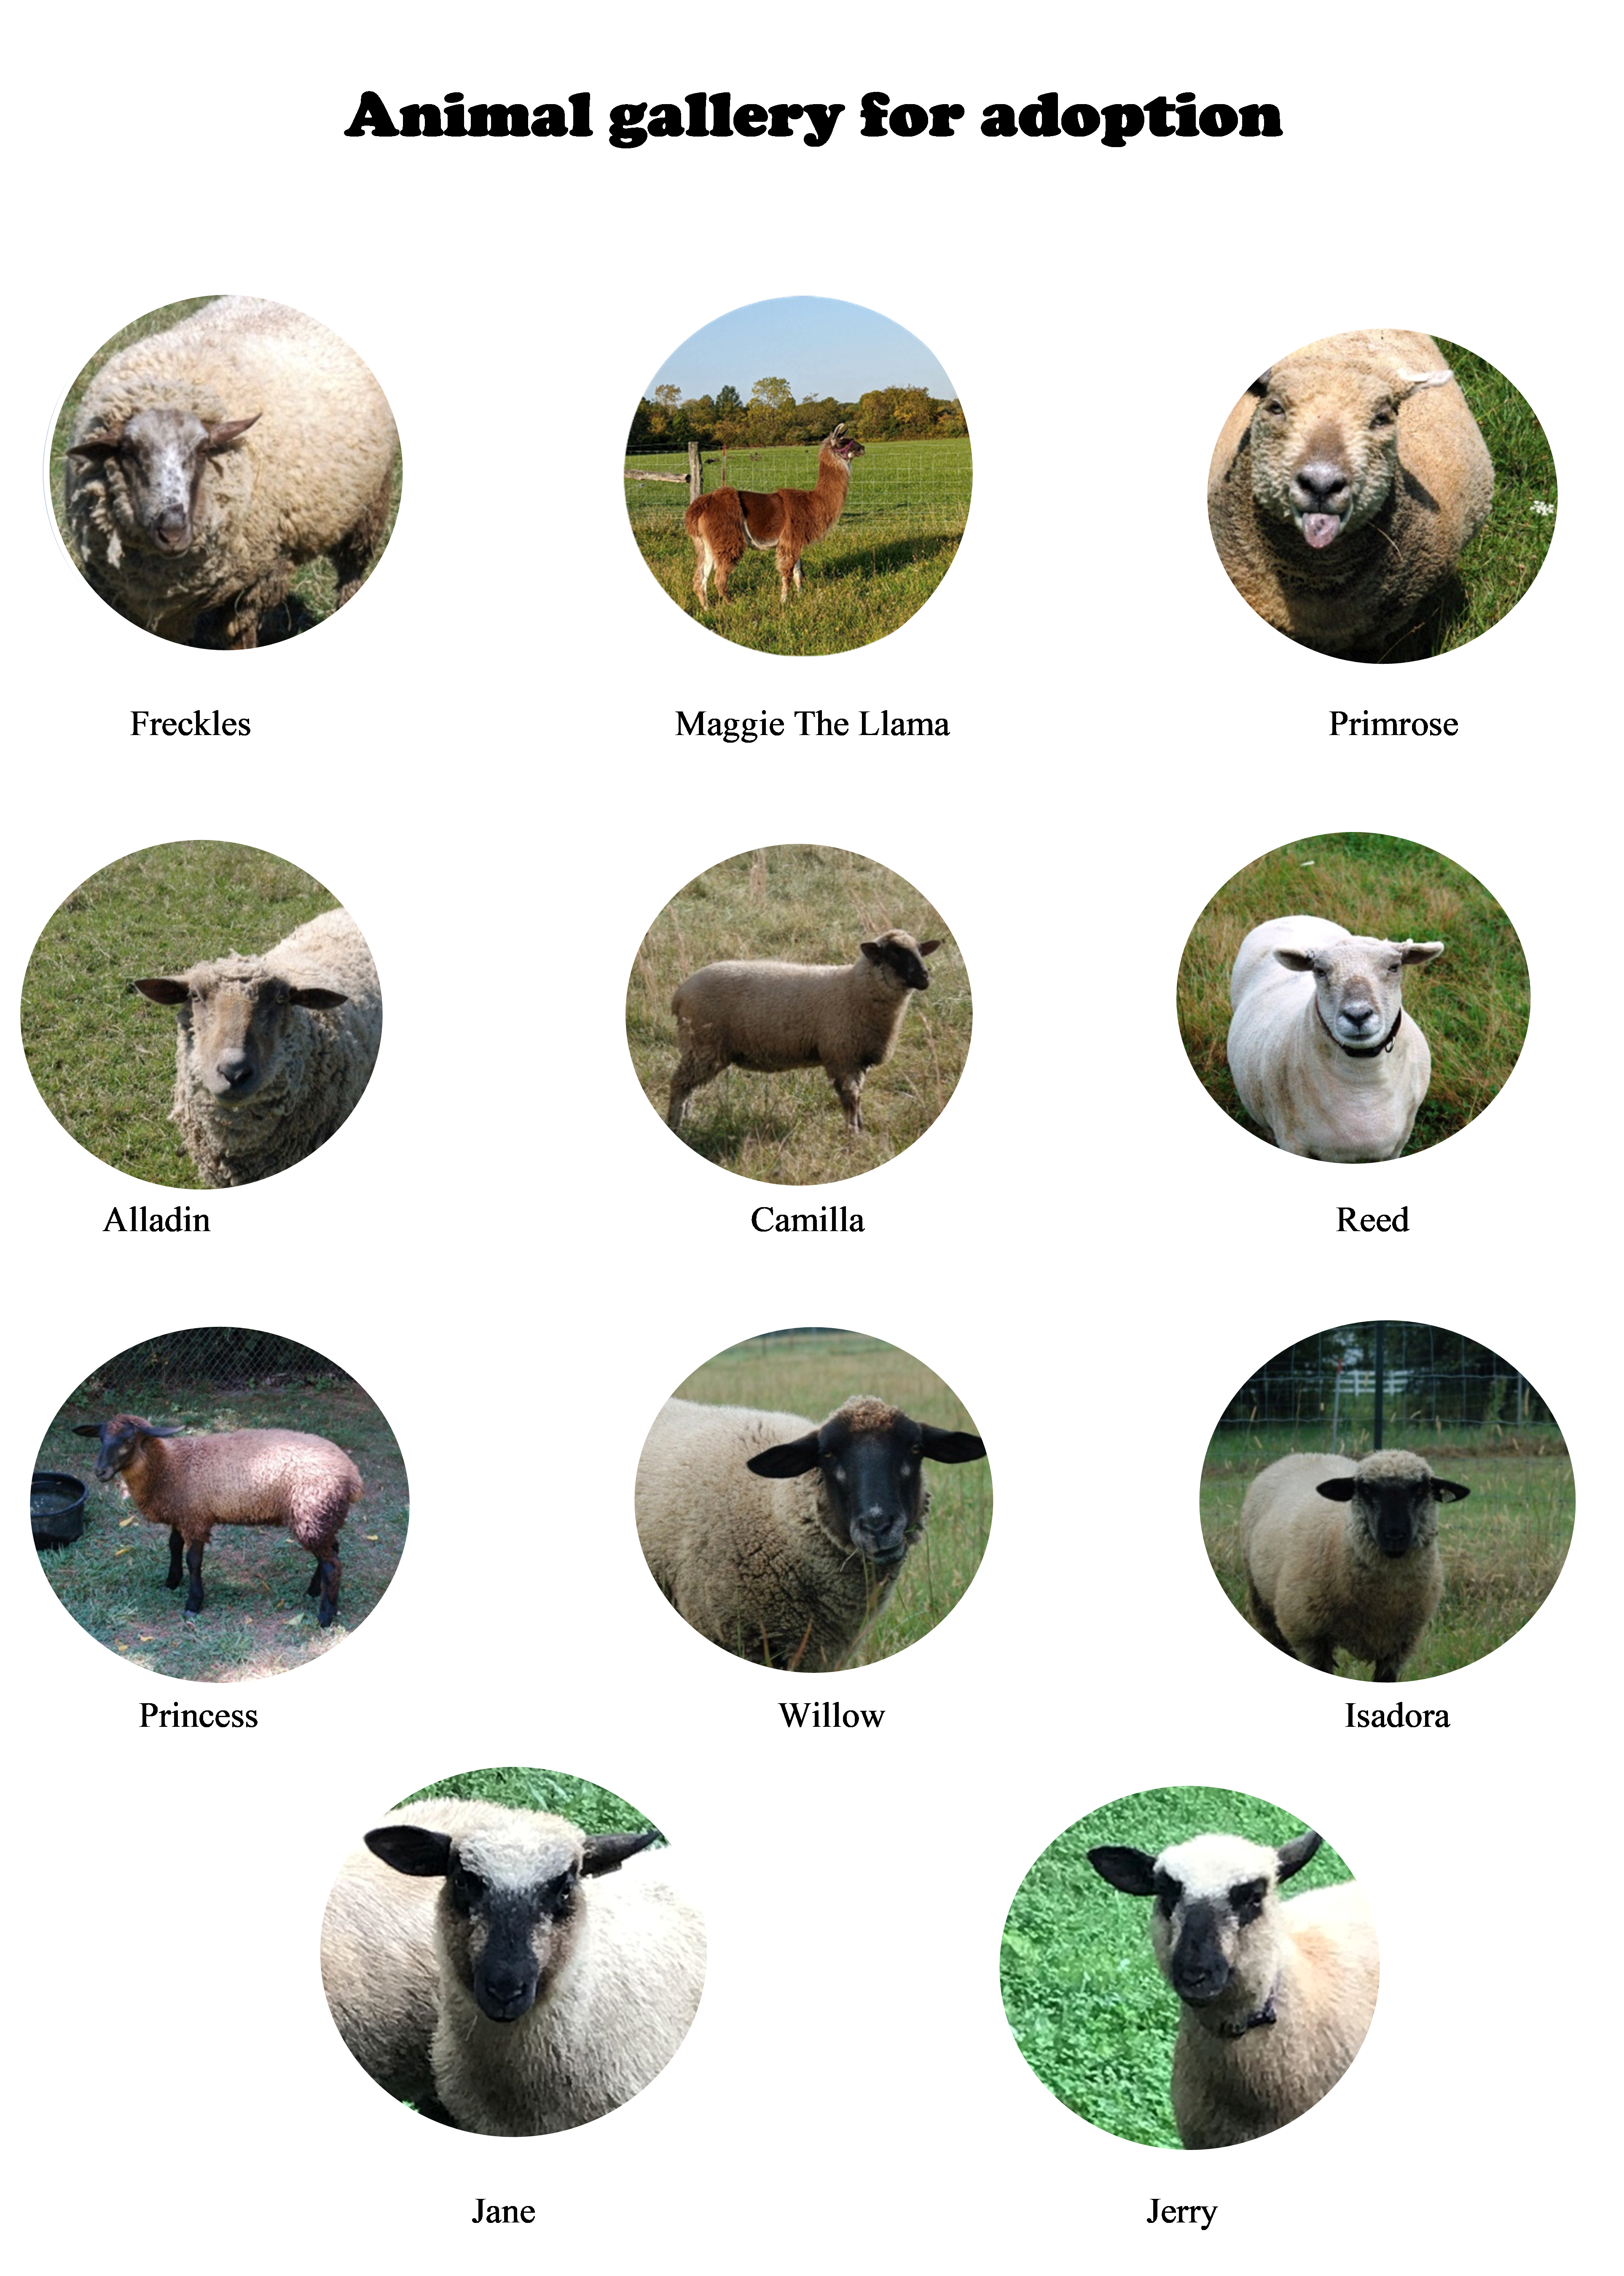 small circular images of our sheep and llama that can be adopted, aka sponsored.